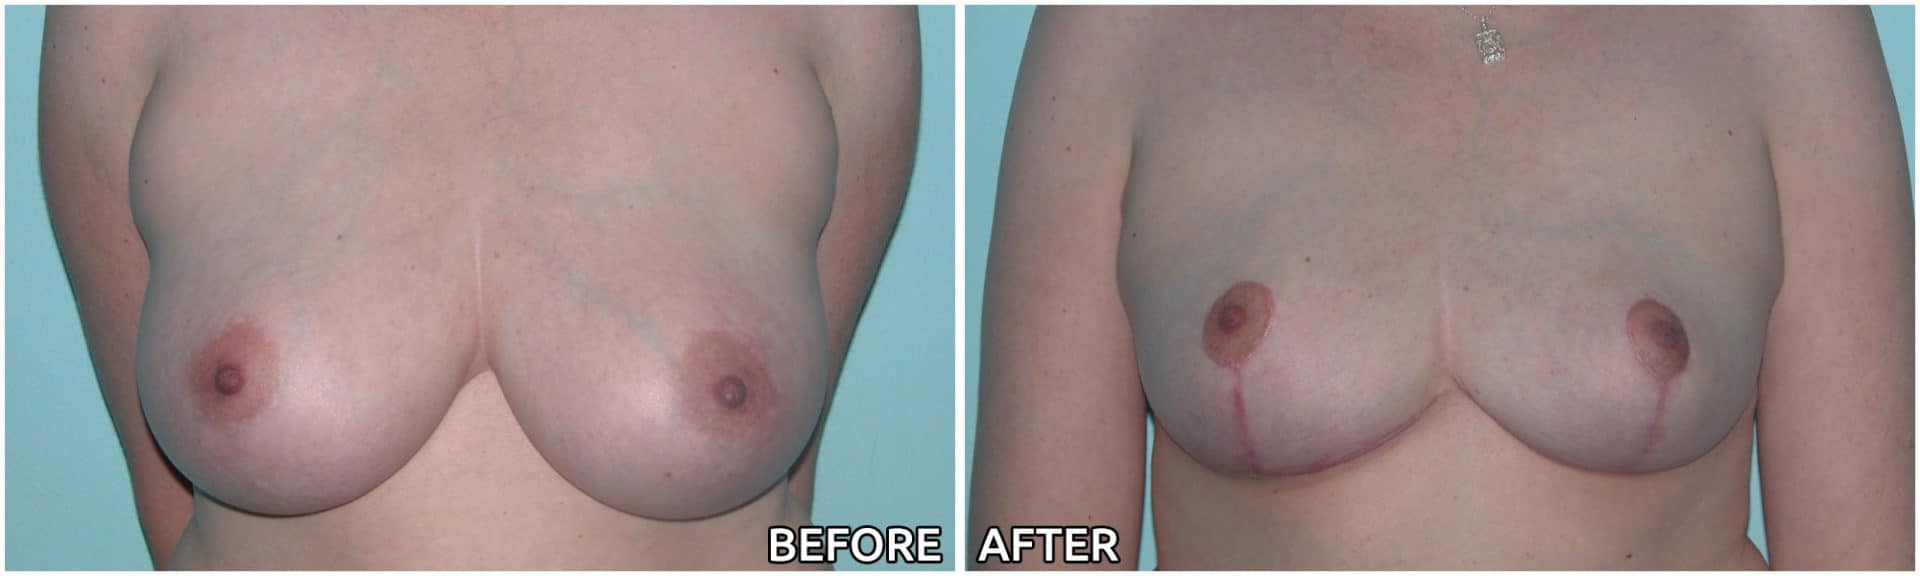 breast-reduction12